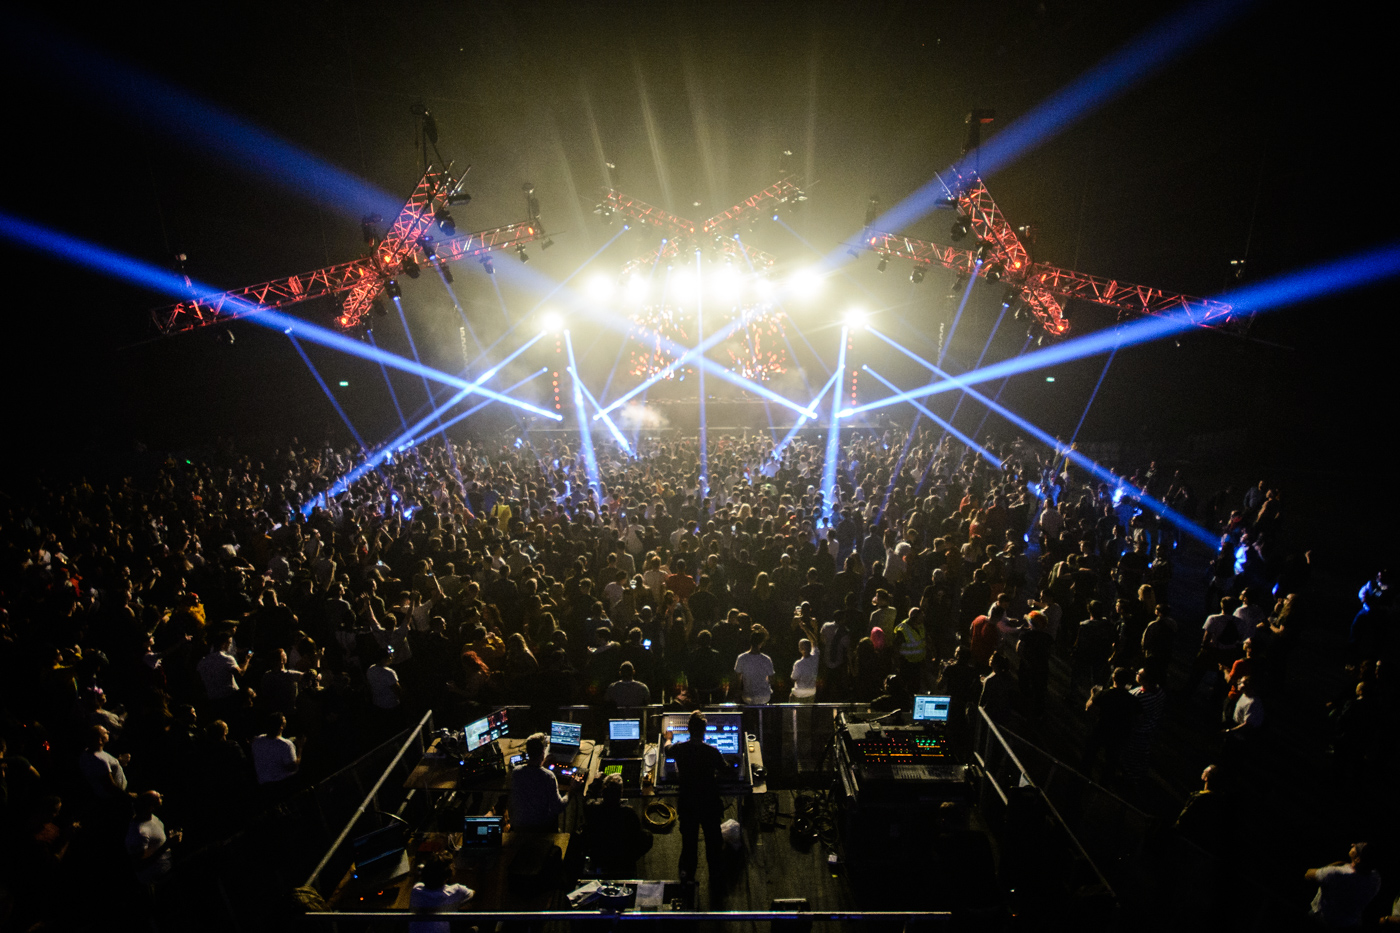 winterparty-at-3arena-dublin-30-10-2016-by-sean-smyth-26-of-53